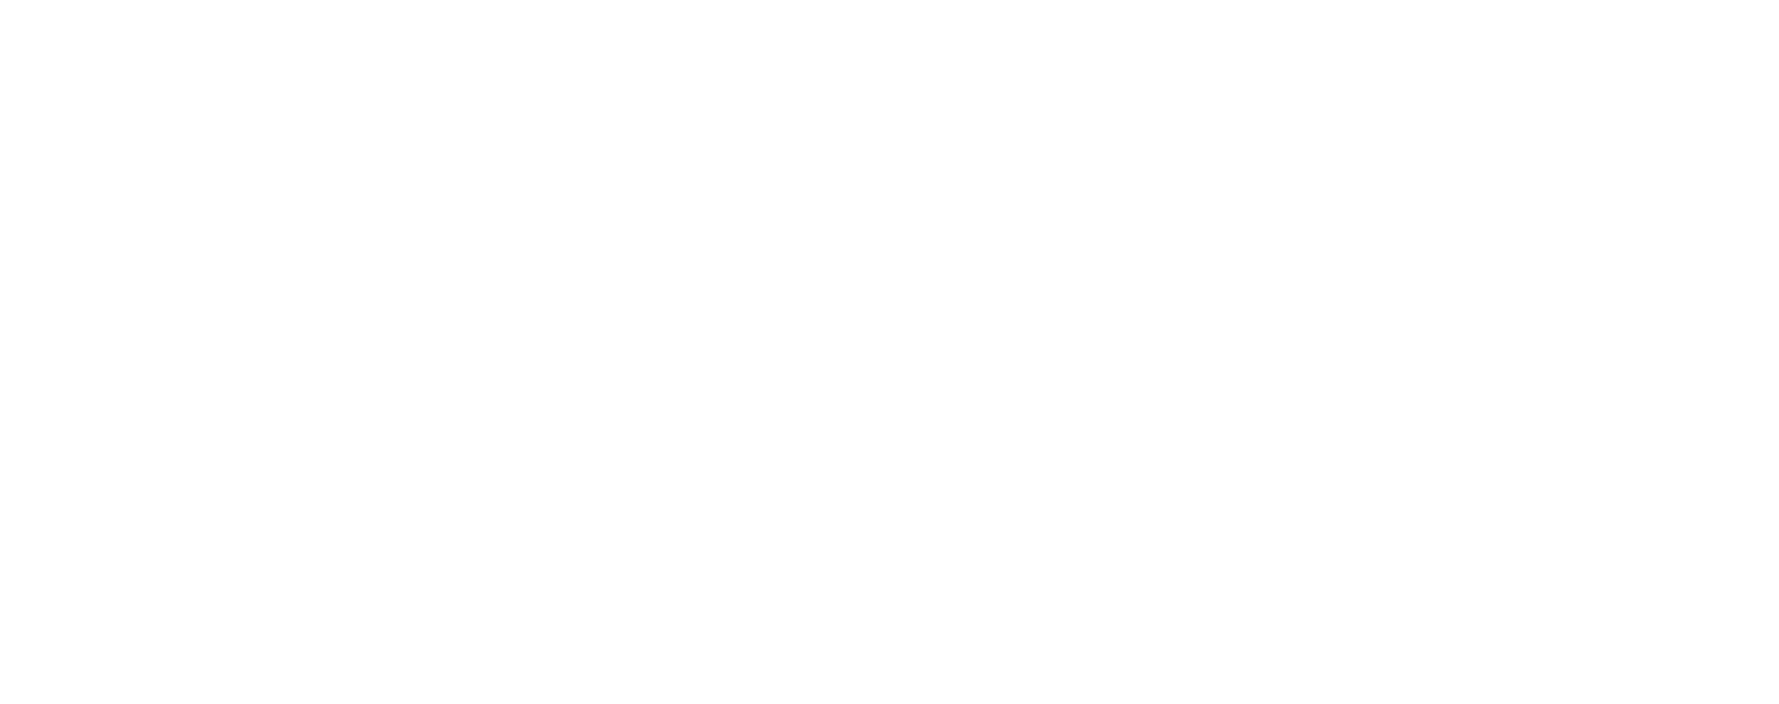 The UGN logo.